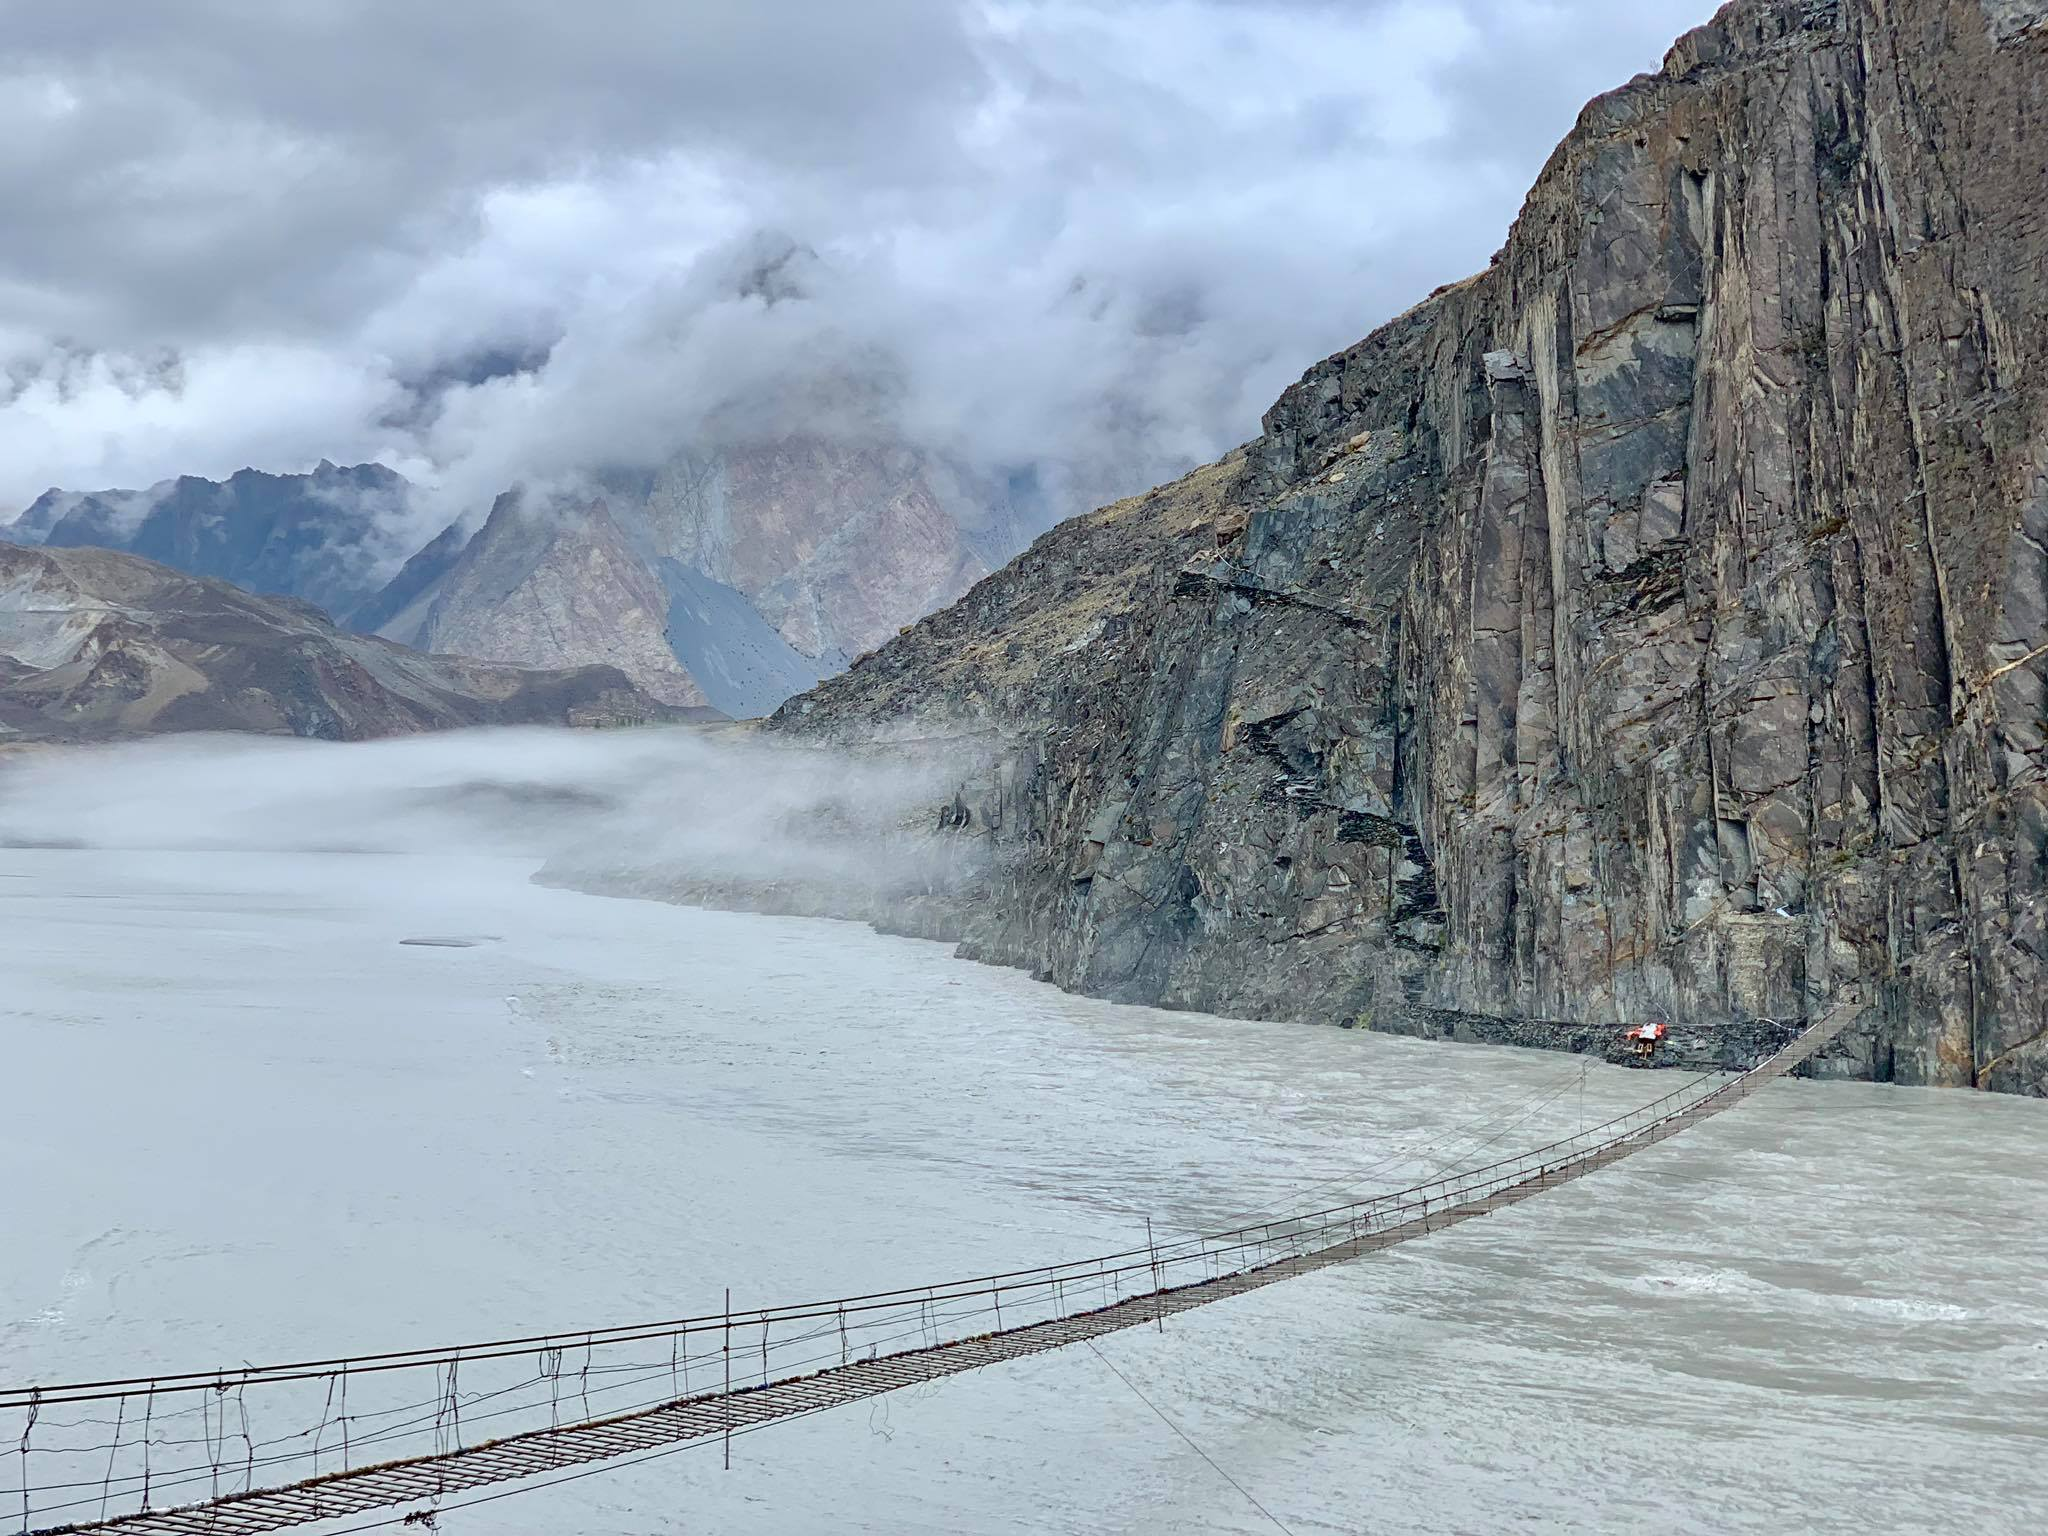 Kach Solo Travels in 2019 Driving in North Hunza Valley to Khunjerab Pass4.jpg